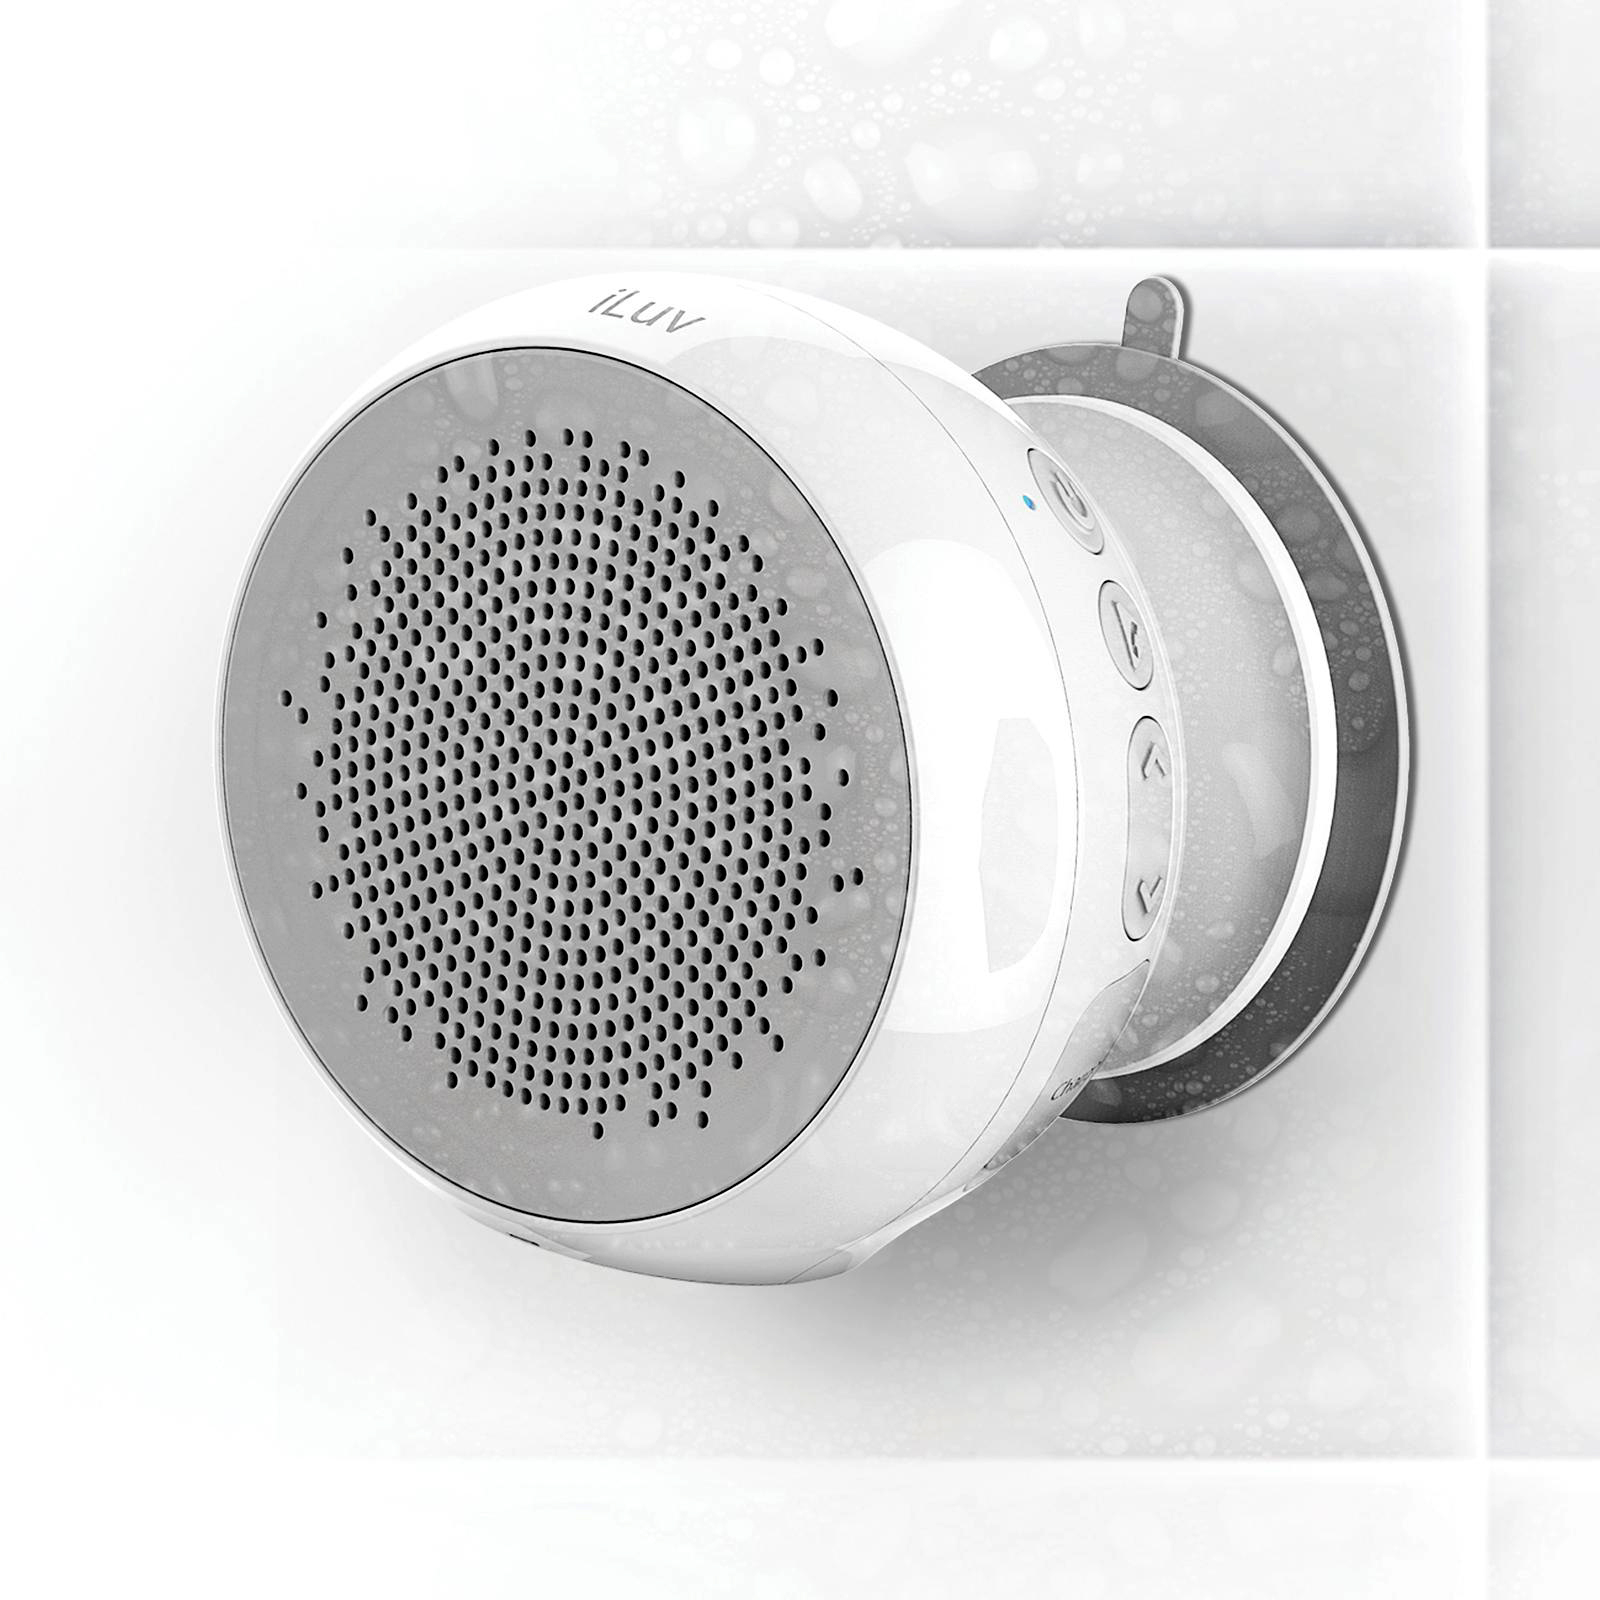 morning registry items iluv aud shower bluetooth speaker